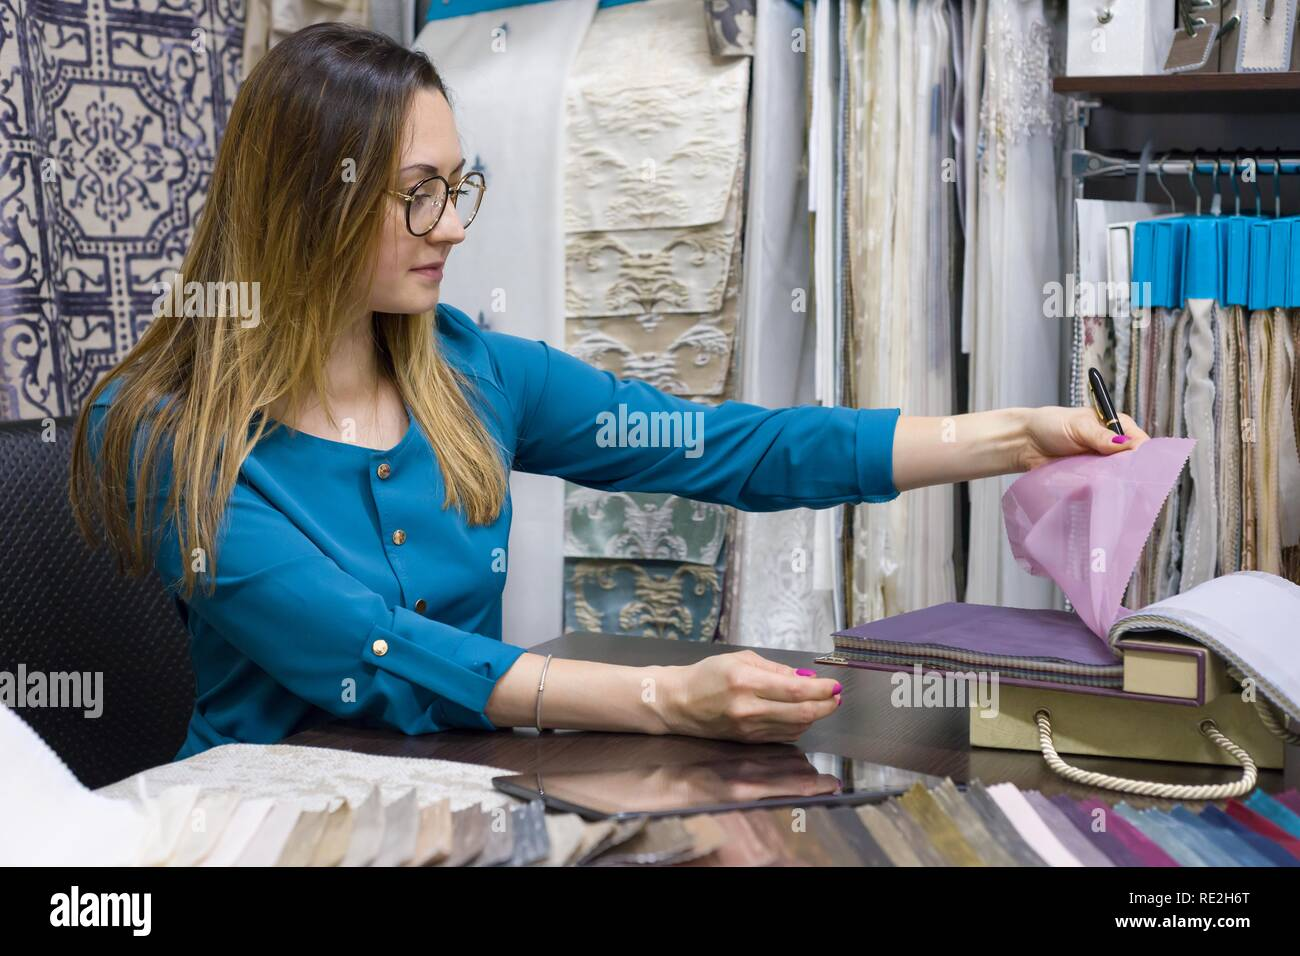 Woman Owns A Store Of Interior Fabrics And Decor Works With Samples Of Materials Small Business Home Textile Shop Stock Photo Alamy